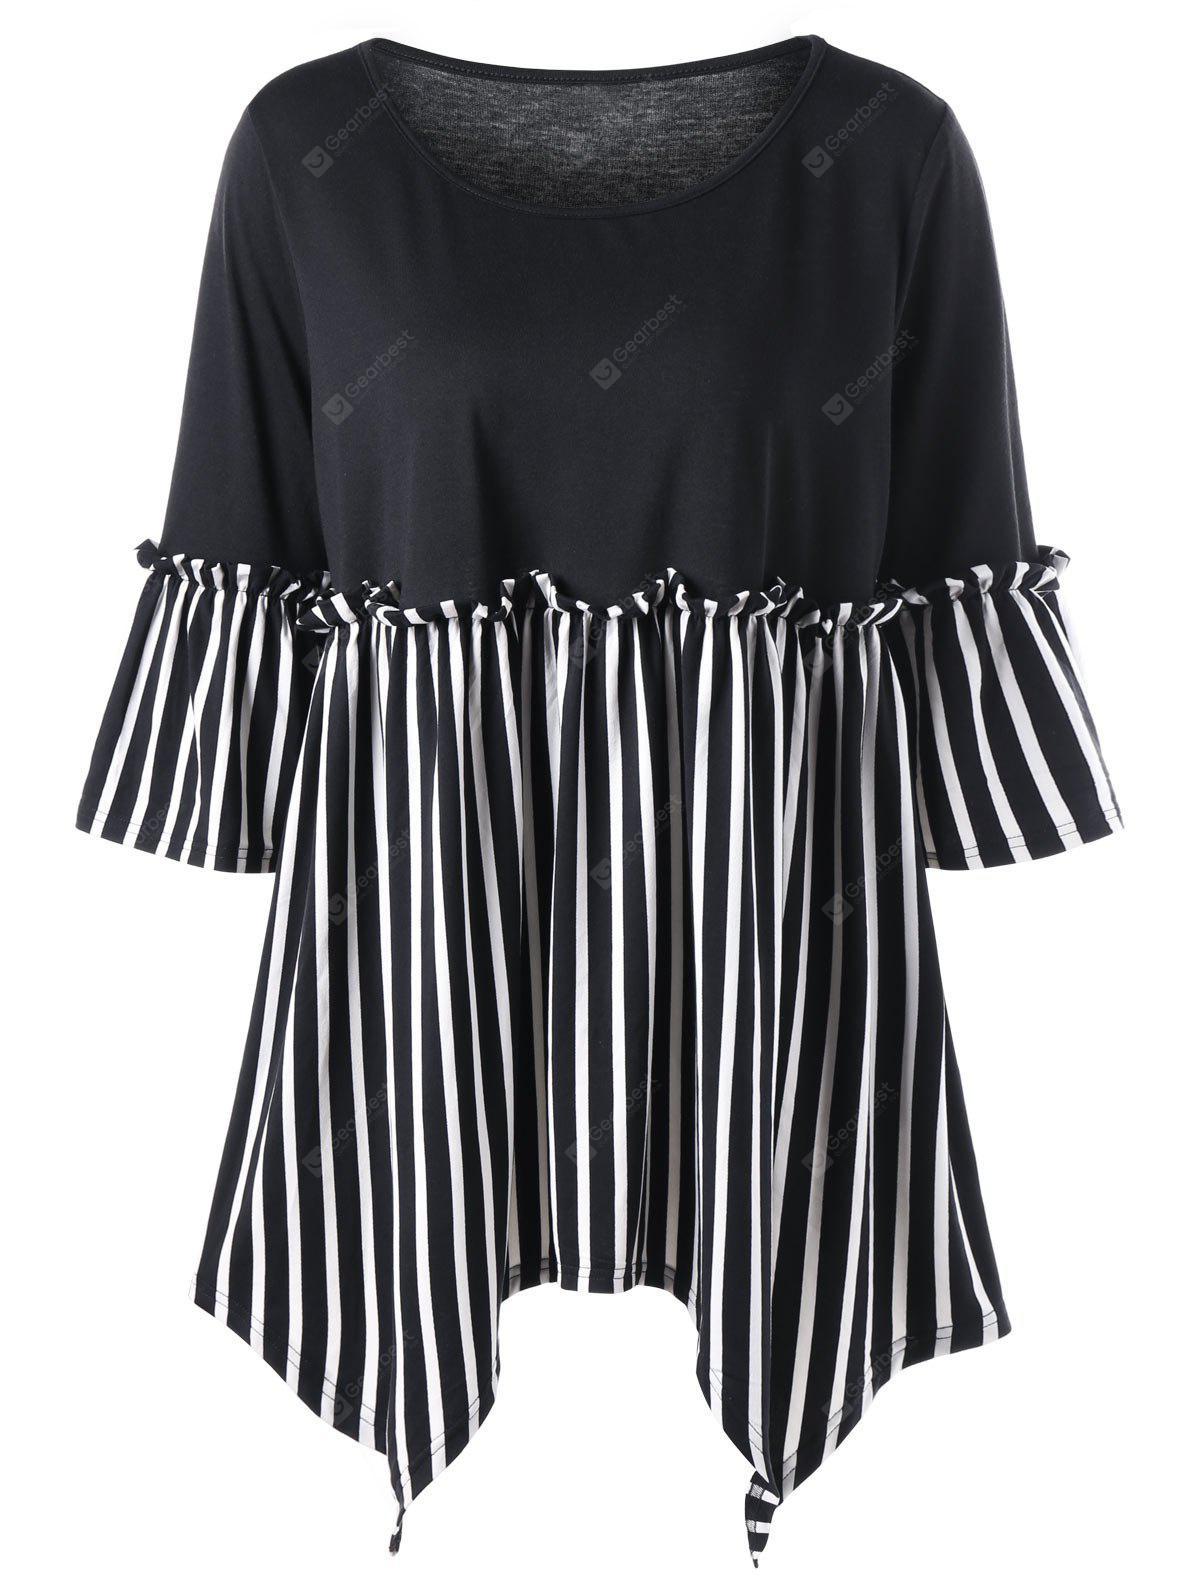 Top Size Frill Striped Handkerchief Top Size